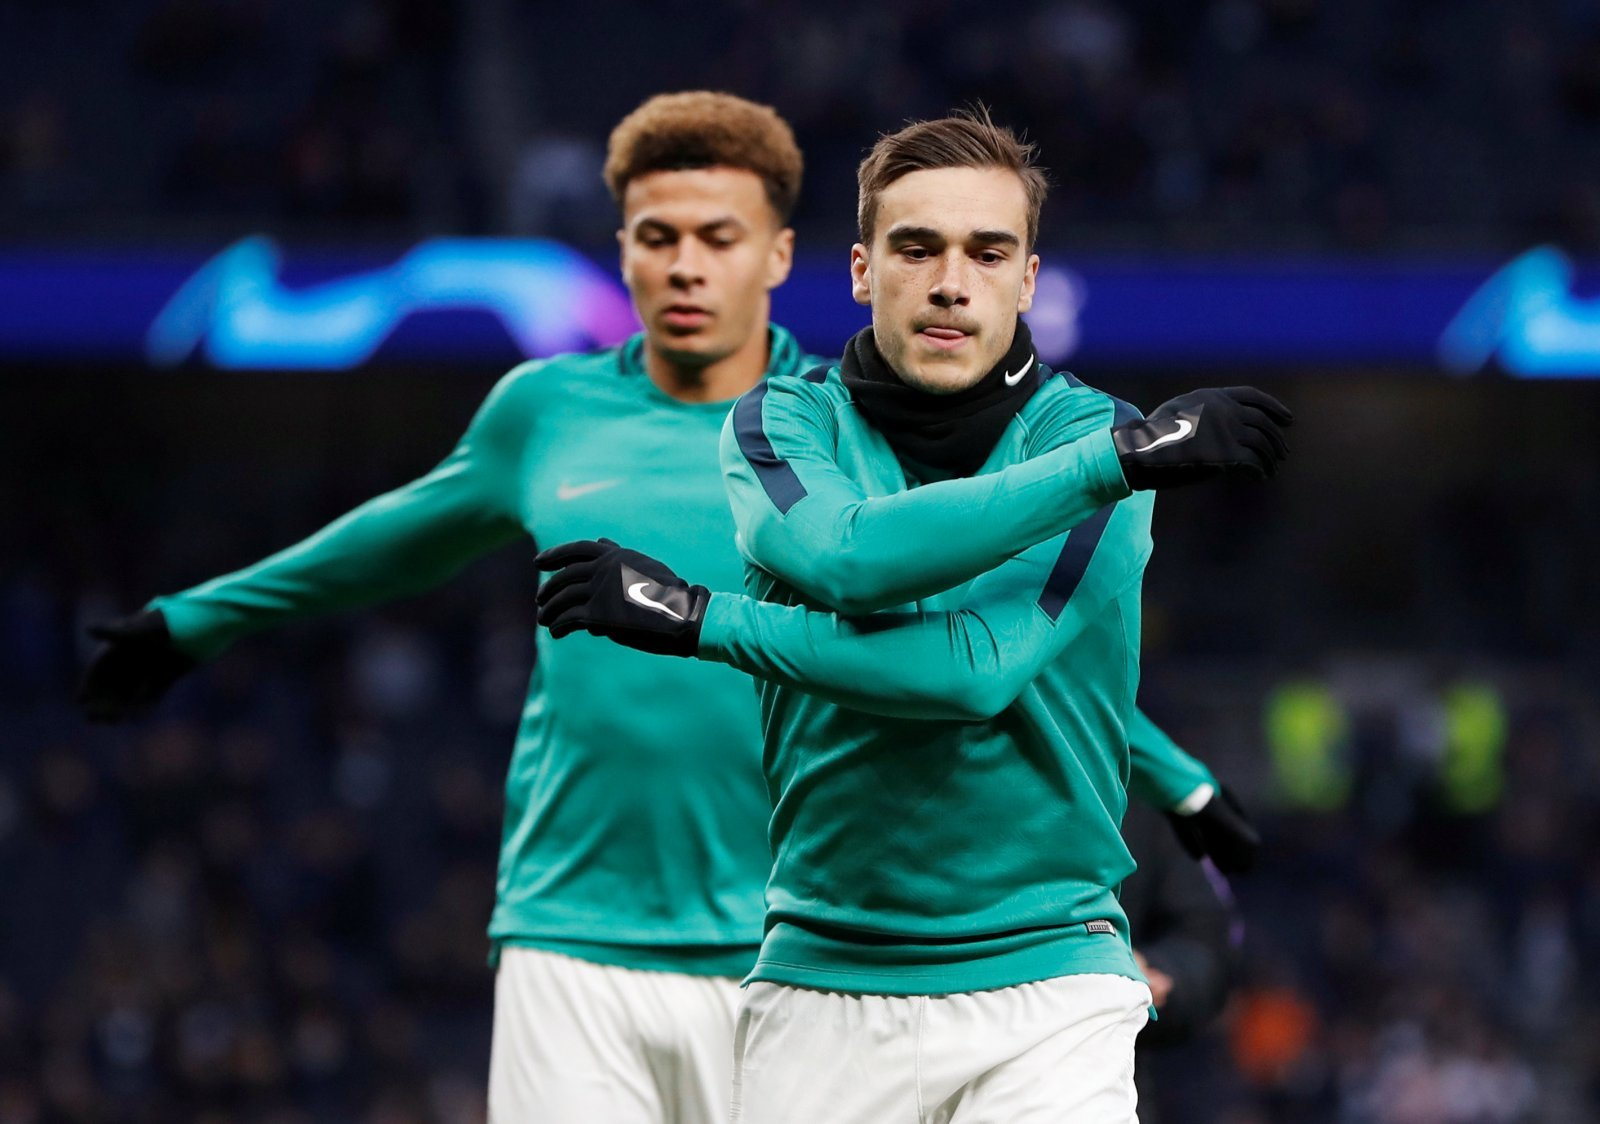 Tottenham: Harry Winks injury proves club must spend big this summer